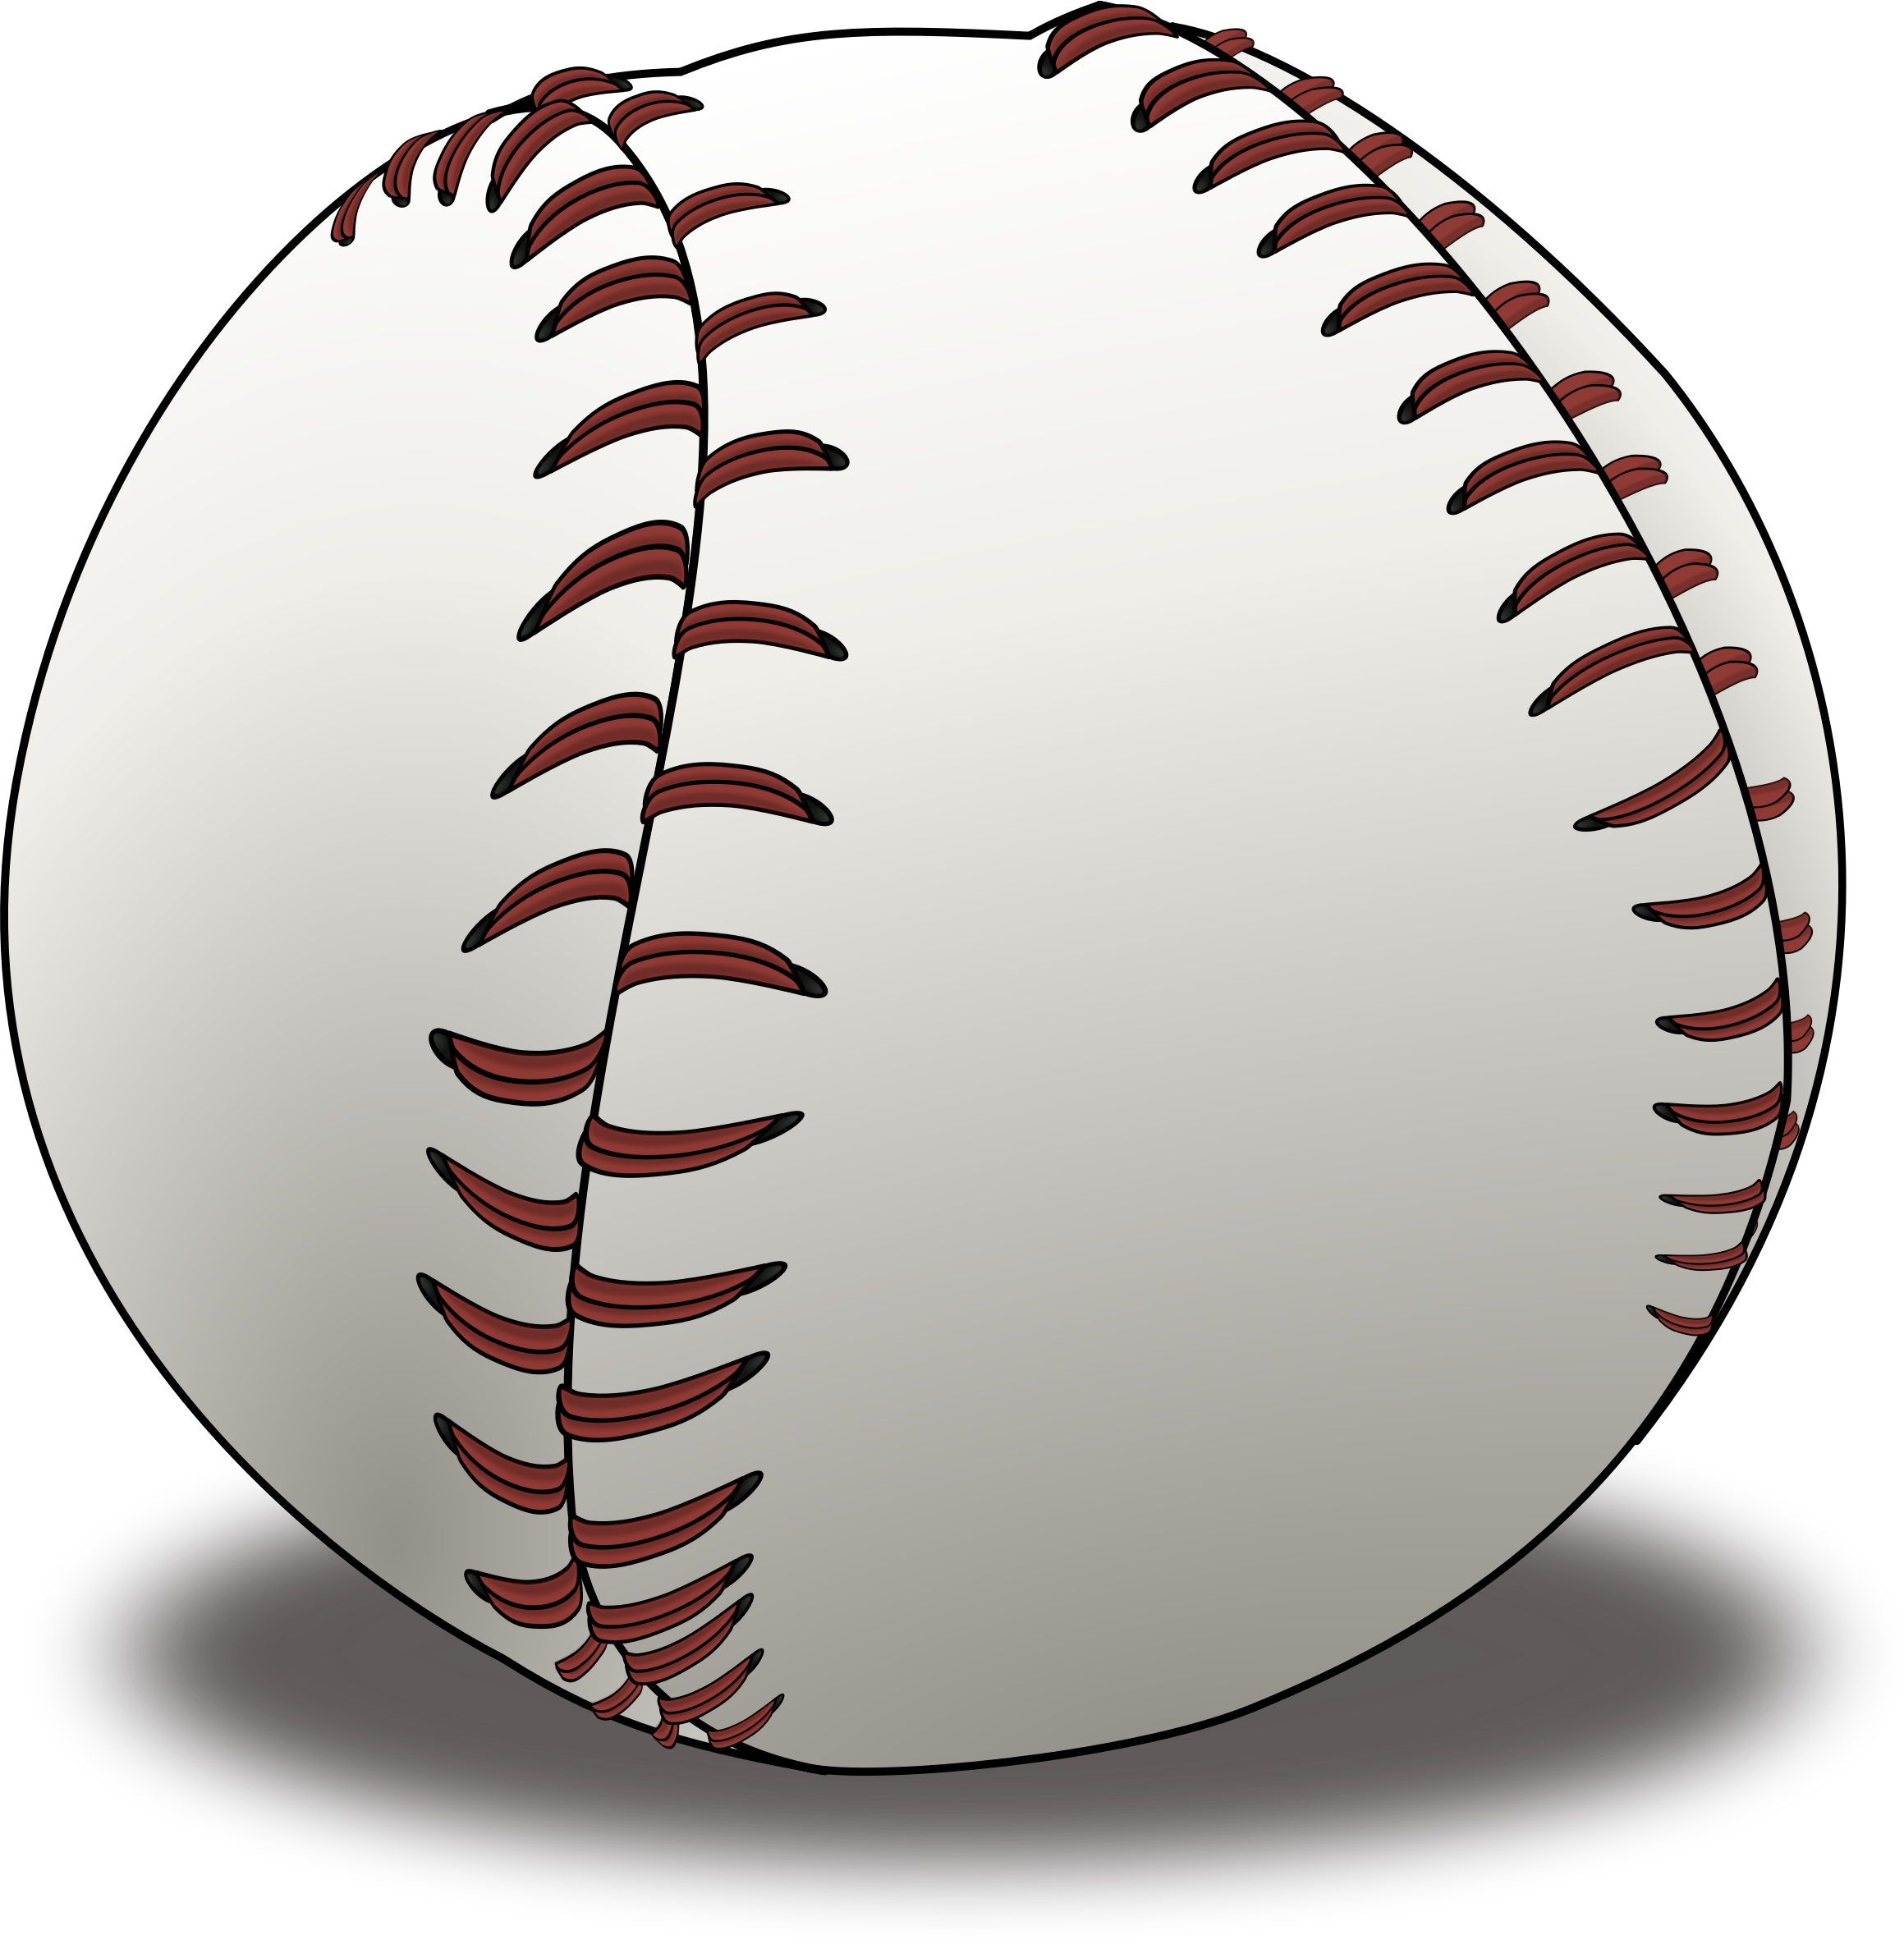 Baseball and ball clipart banner library Clipart - Baseball banner library